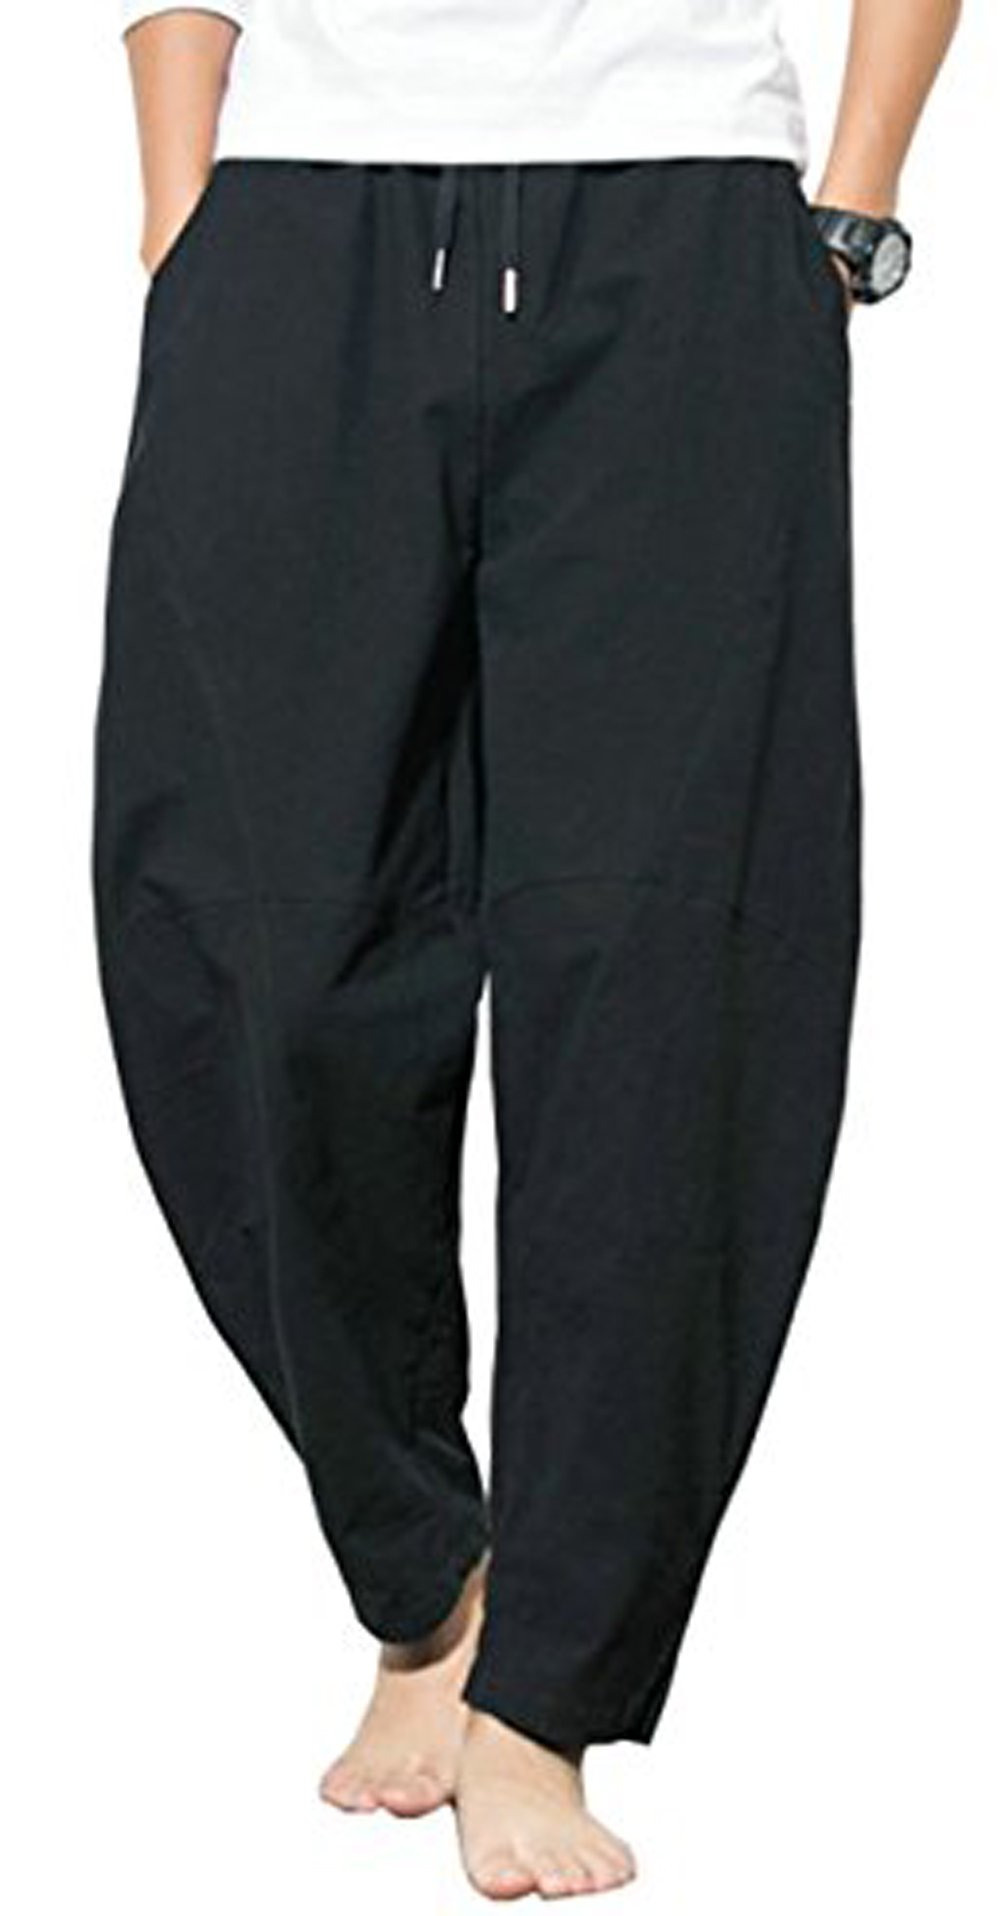 Thrivqyaf Men's Summer Casual Baggy Drawstring Cotton Beach Harem Pants Trousers (US M = Asian 2XL Waist:33''-34'', Black) by Thrivqyaf (Image #2)